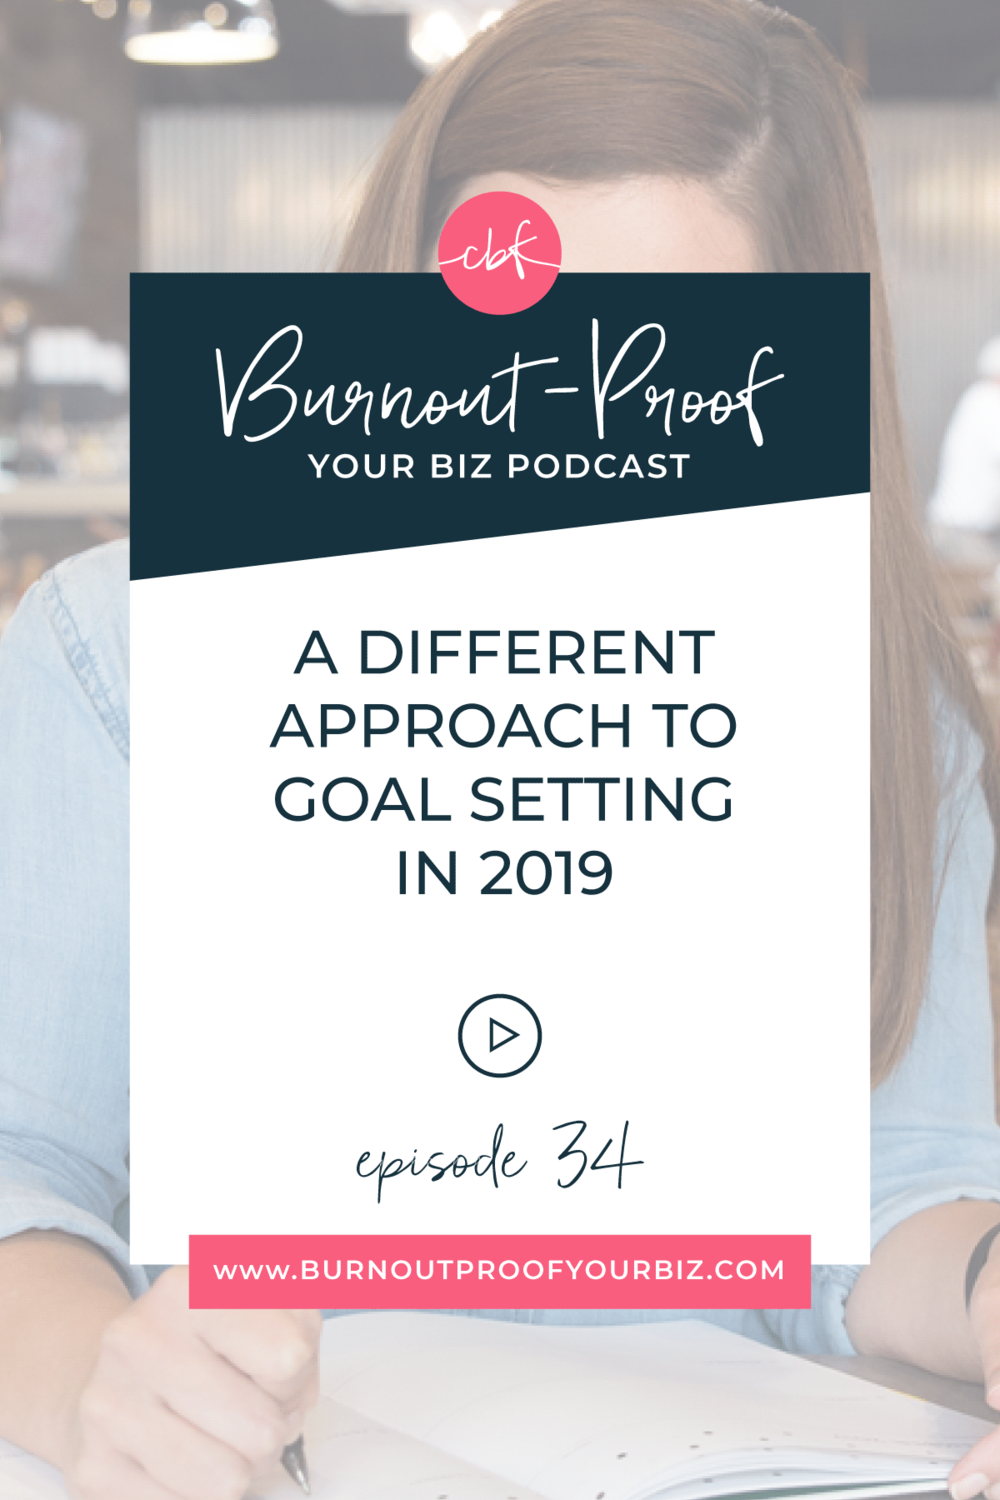 Burnout-Proof Your Biz Podcast with Chelsea B Foster | Episode 034 - A Different Approach to Goal Setting In 2019 || Learn how to run your biz and live your dream life on your own terms without the fear of burnout. || Workflow & Productivity Specialist | Systems | Goal Setting | SMART Method | Business Goals | Business Planning | Mindset